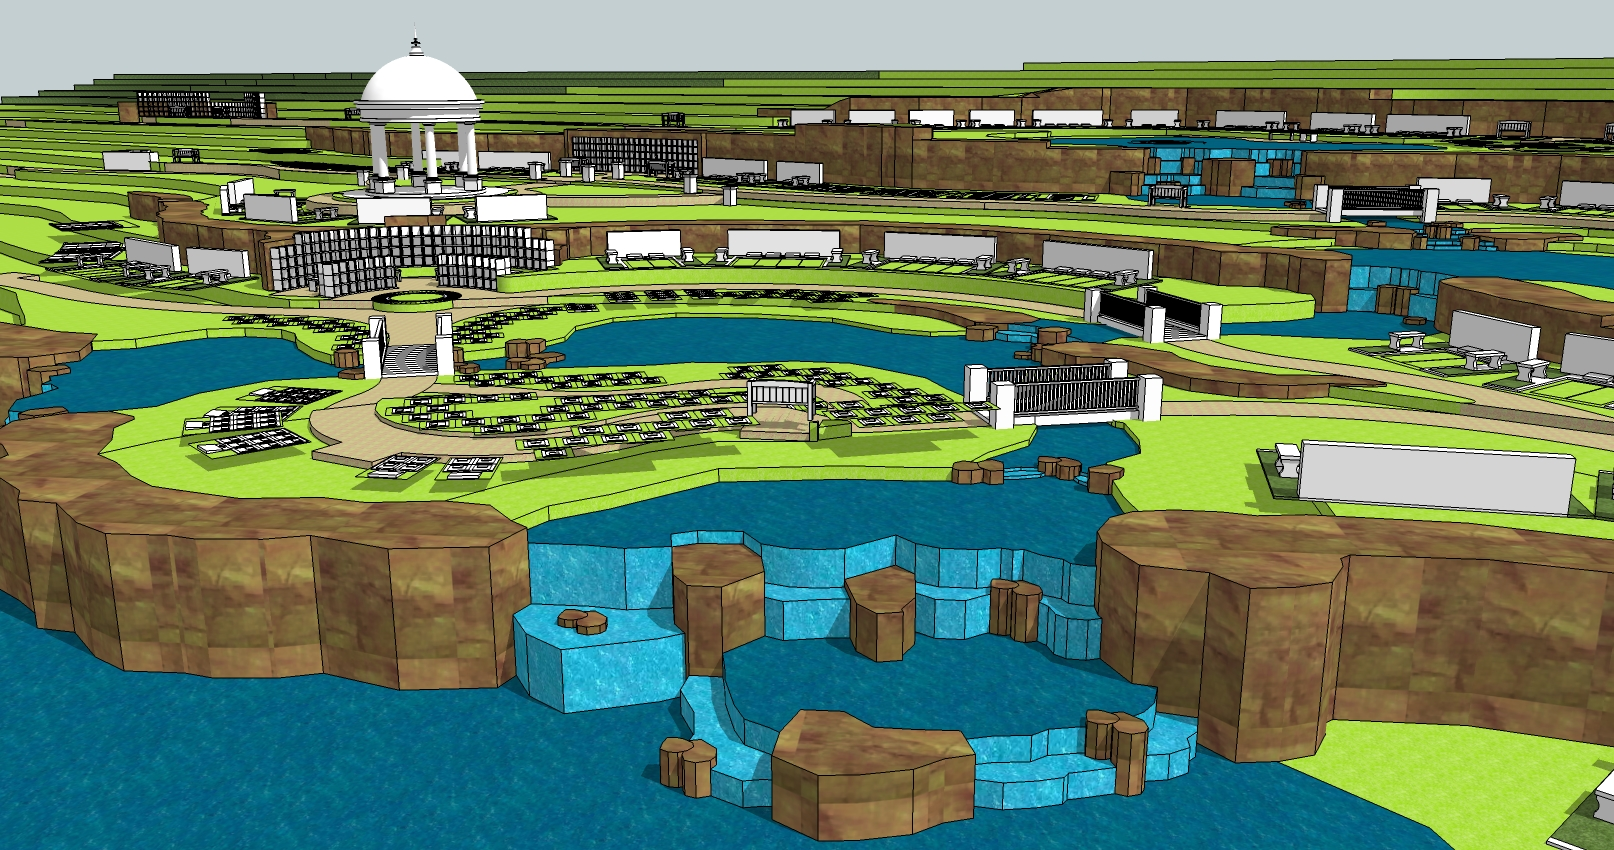 Forest Lawn Cemetery_Site model_3D_10-8-13 - ds10.jpg